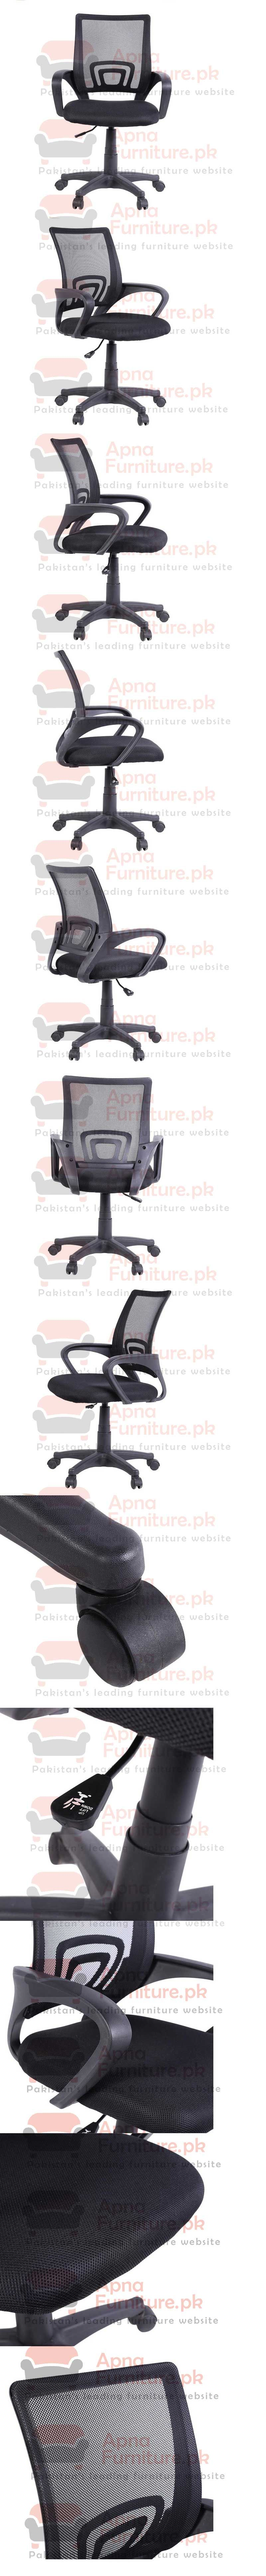 Buy Cherry Office Chair In Pakistan Contact The Seller Office